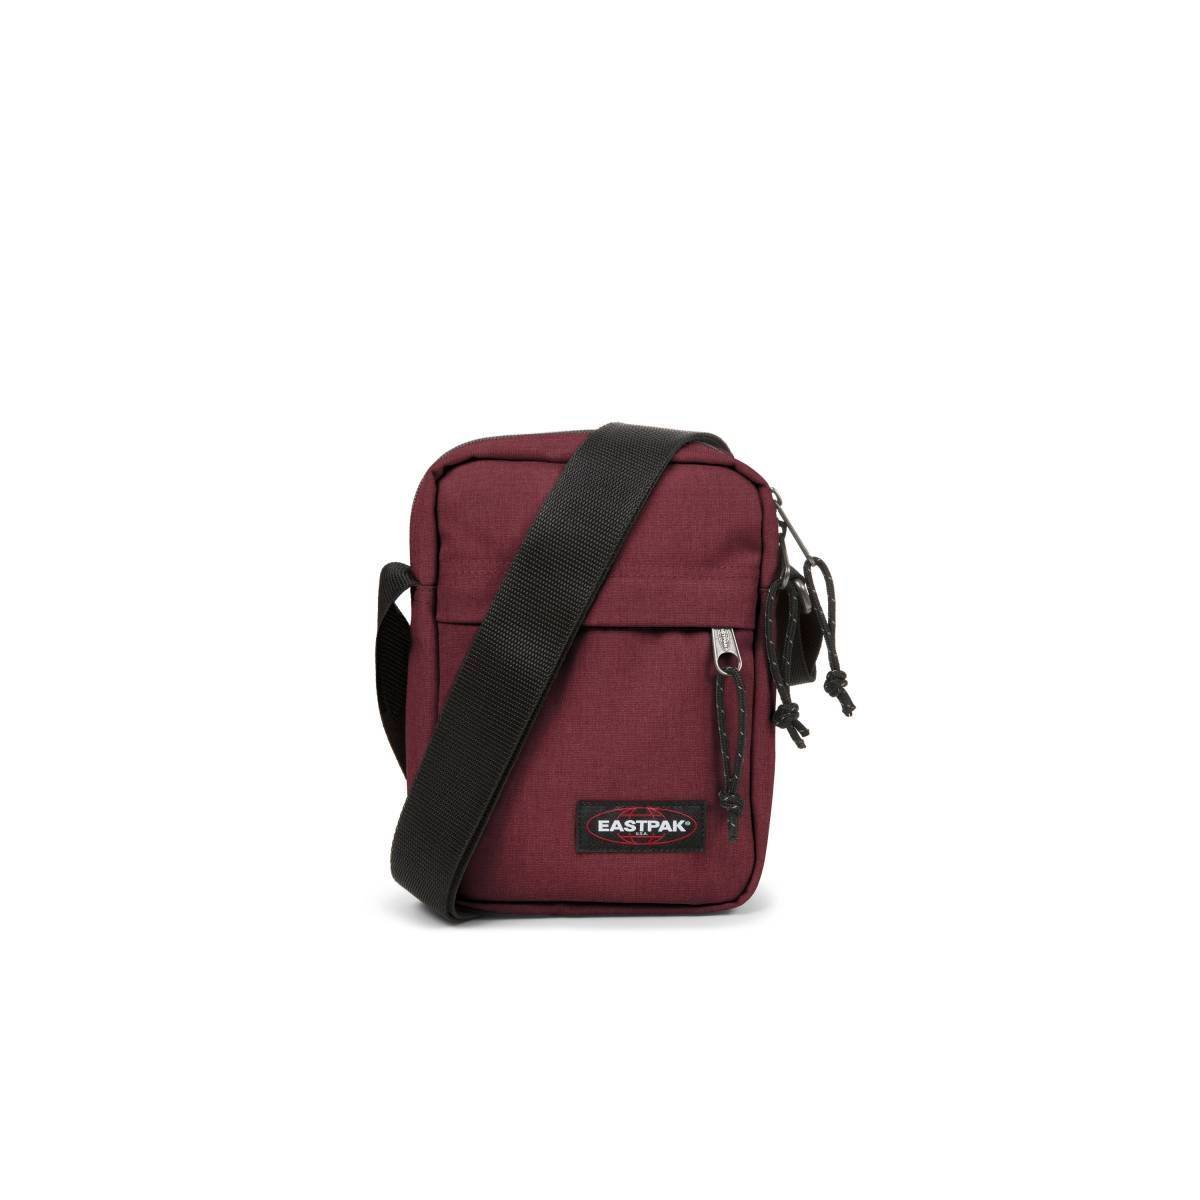 2d4618c4b6 Eastpak - Sacoche bandouliere The one (K045)